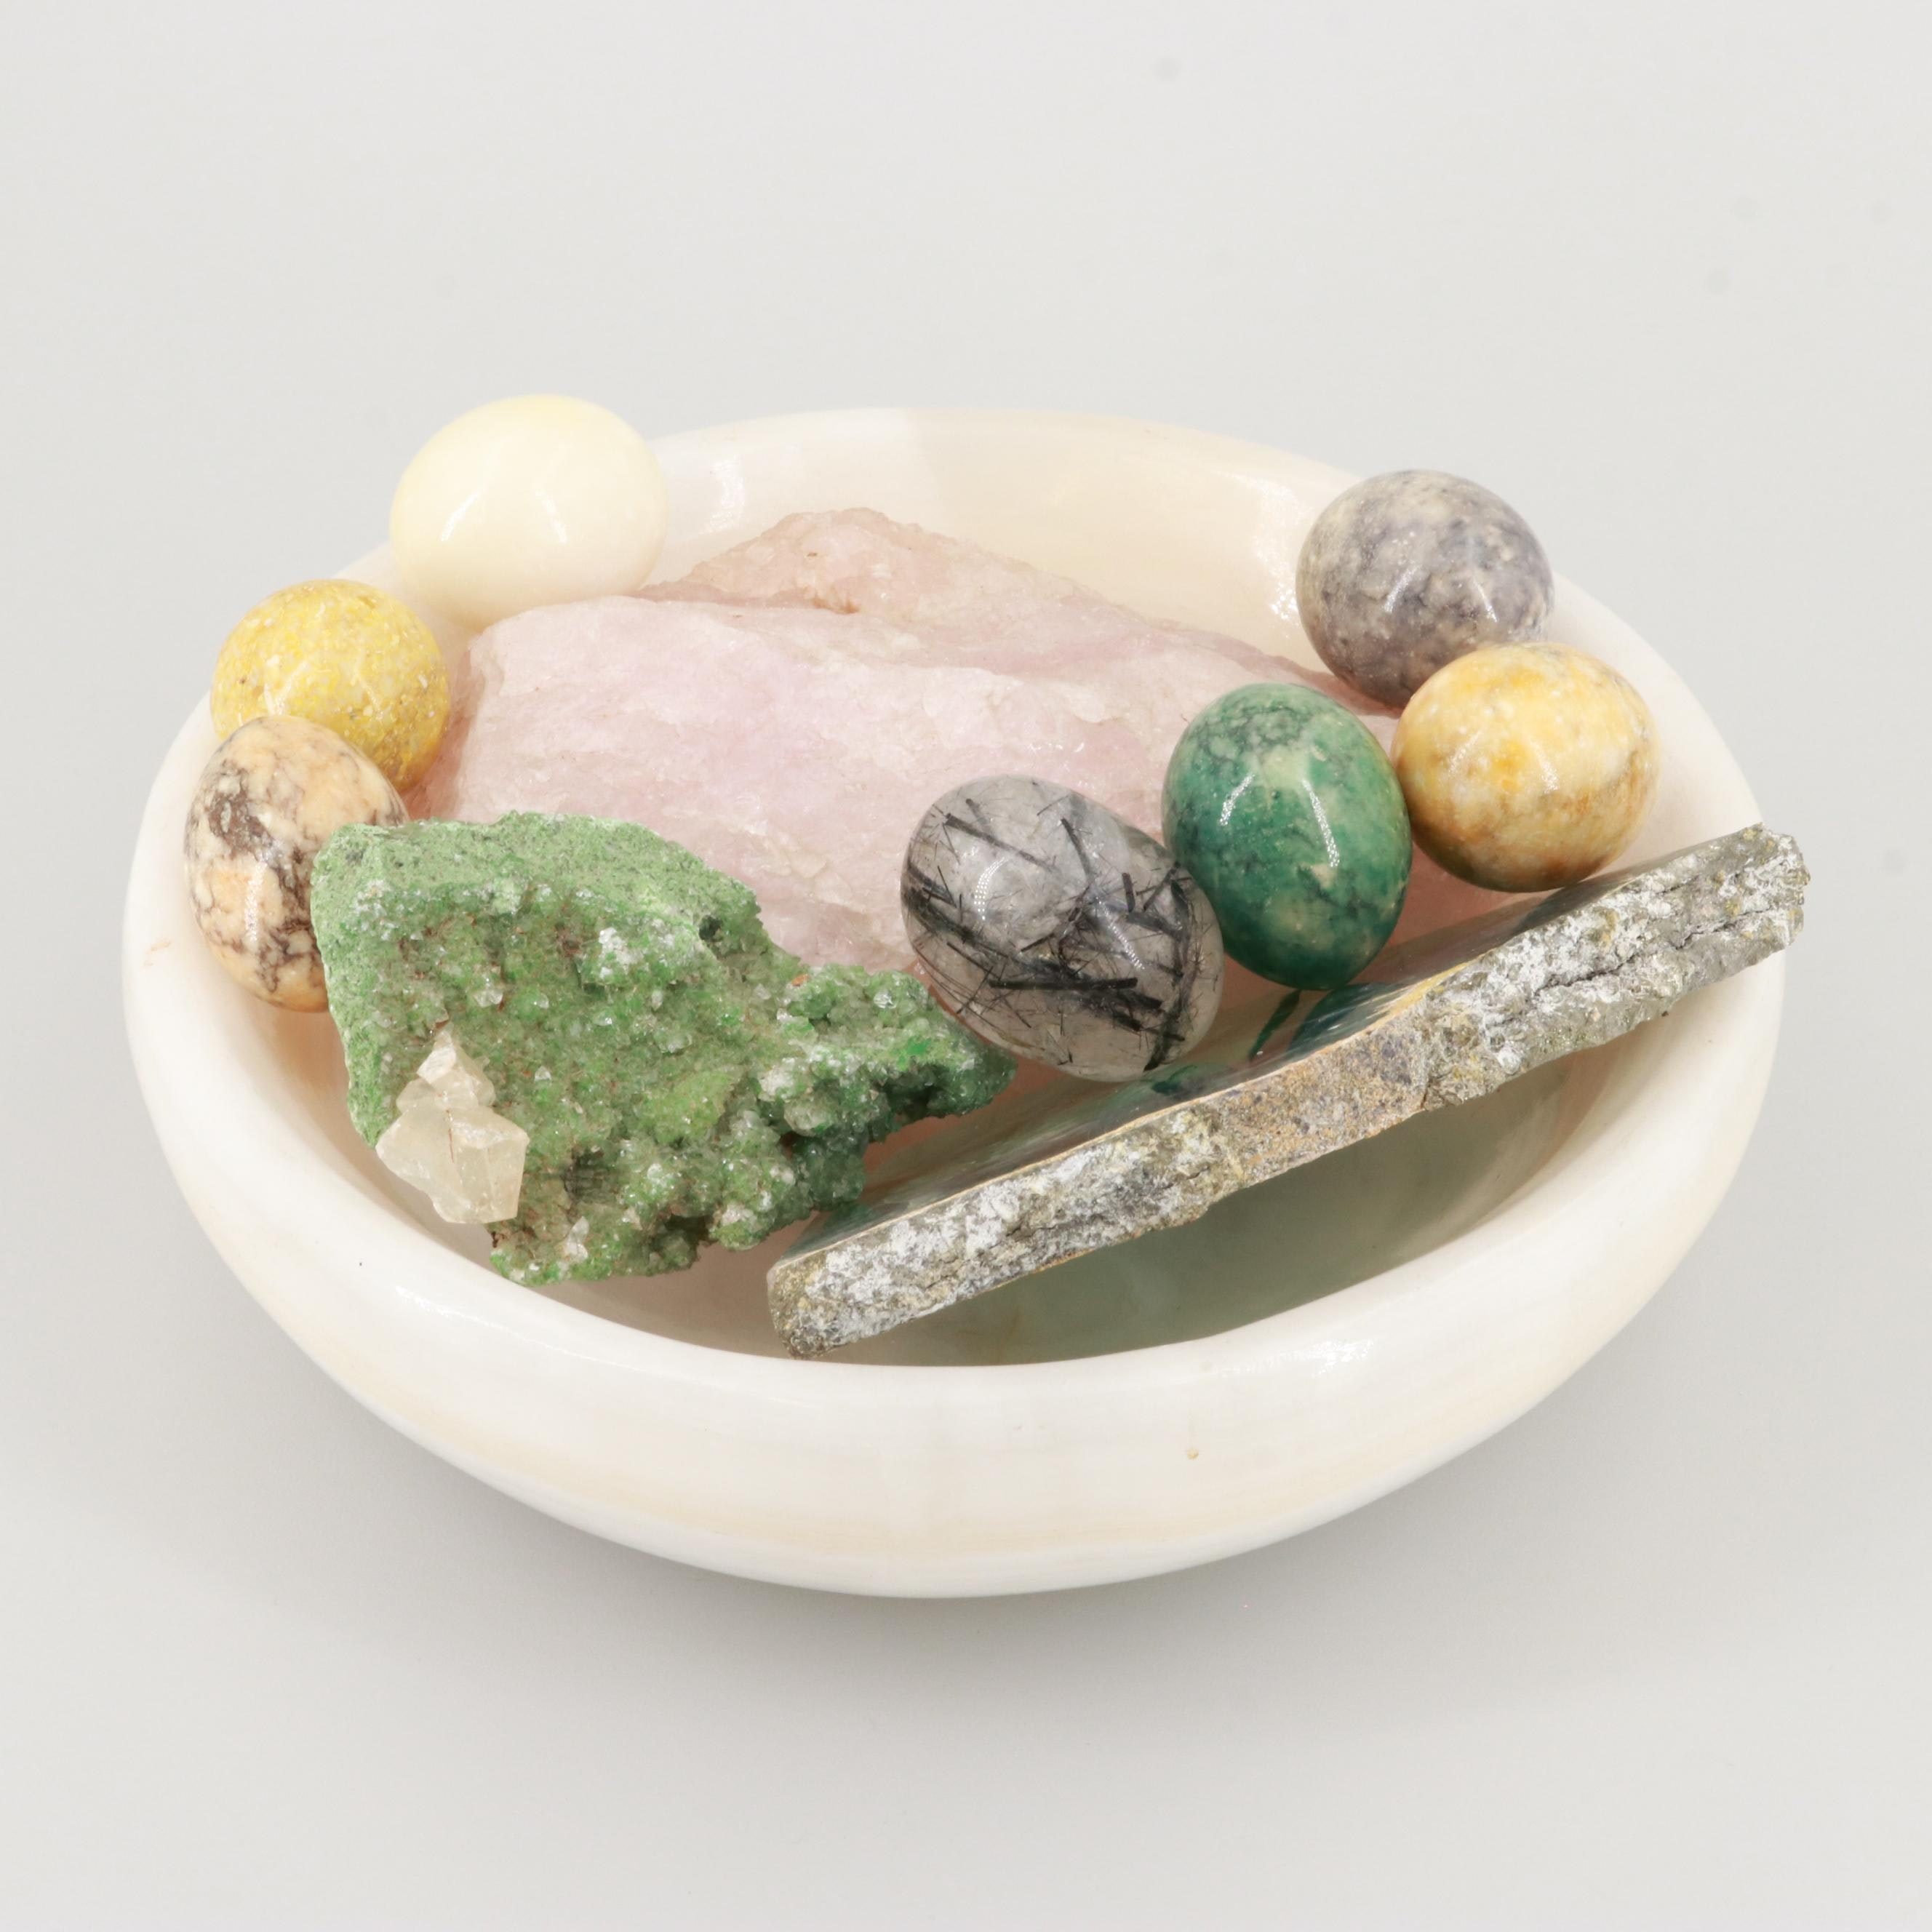 Polished Alabaster Bowl and Gemstone Eggs with Flourite and Calcite Specimens